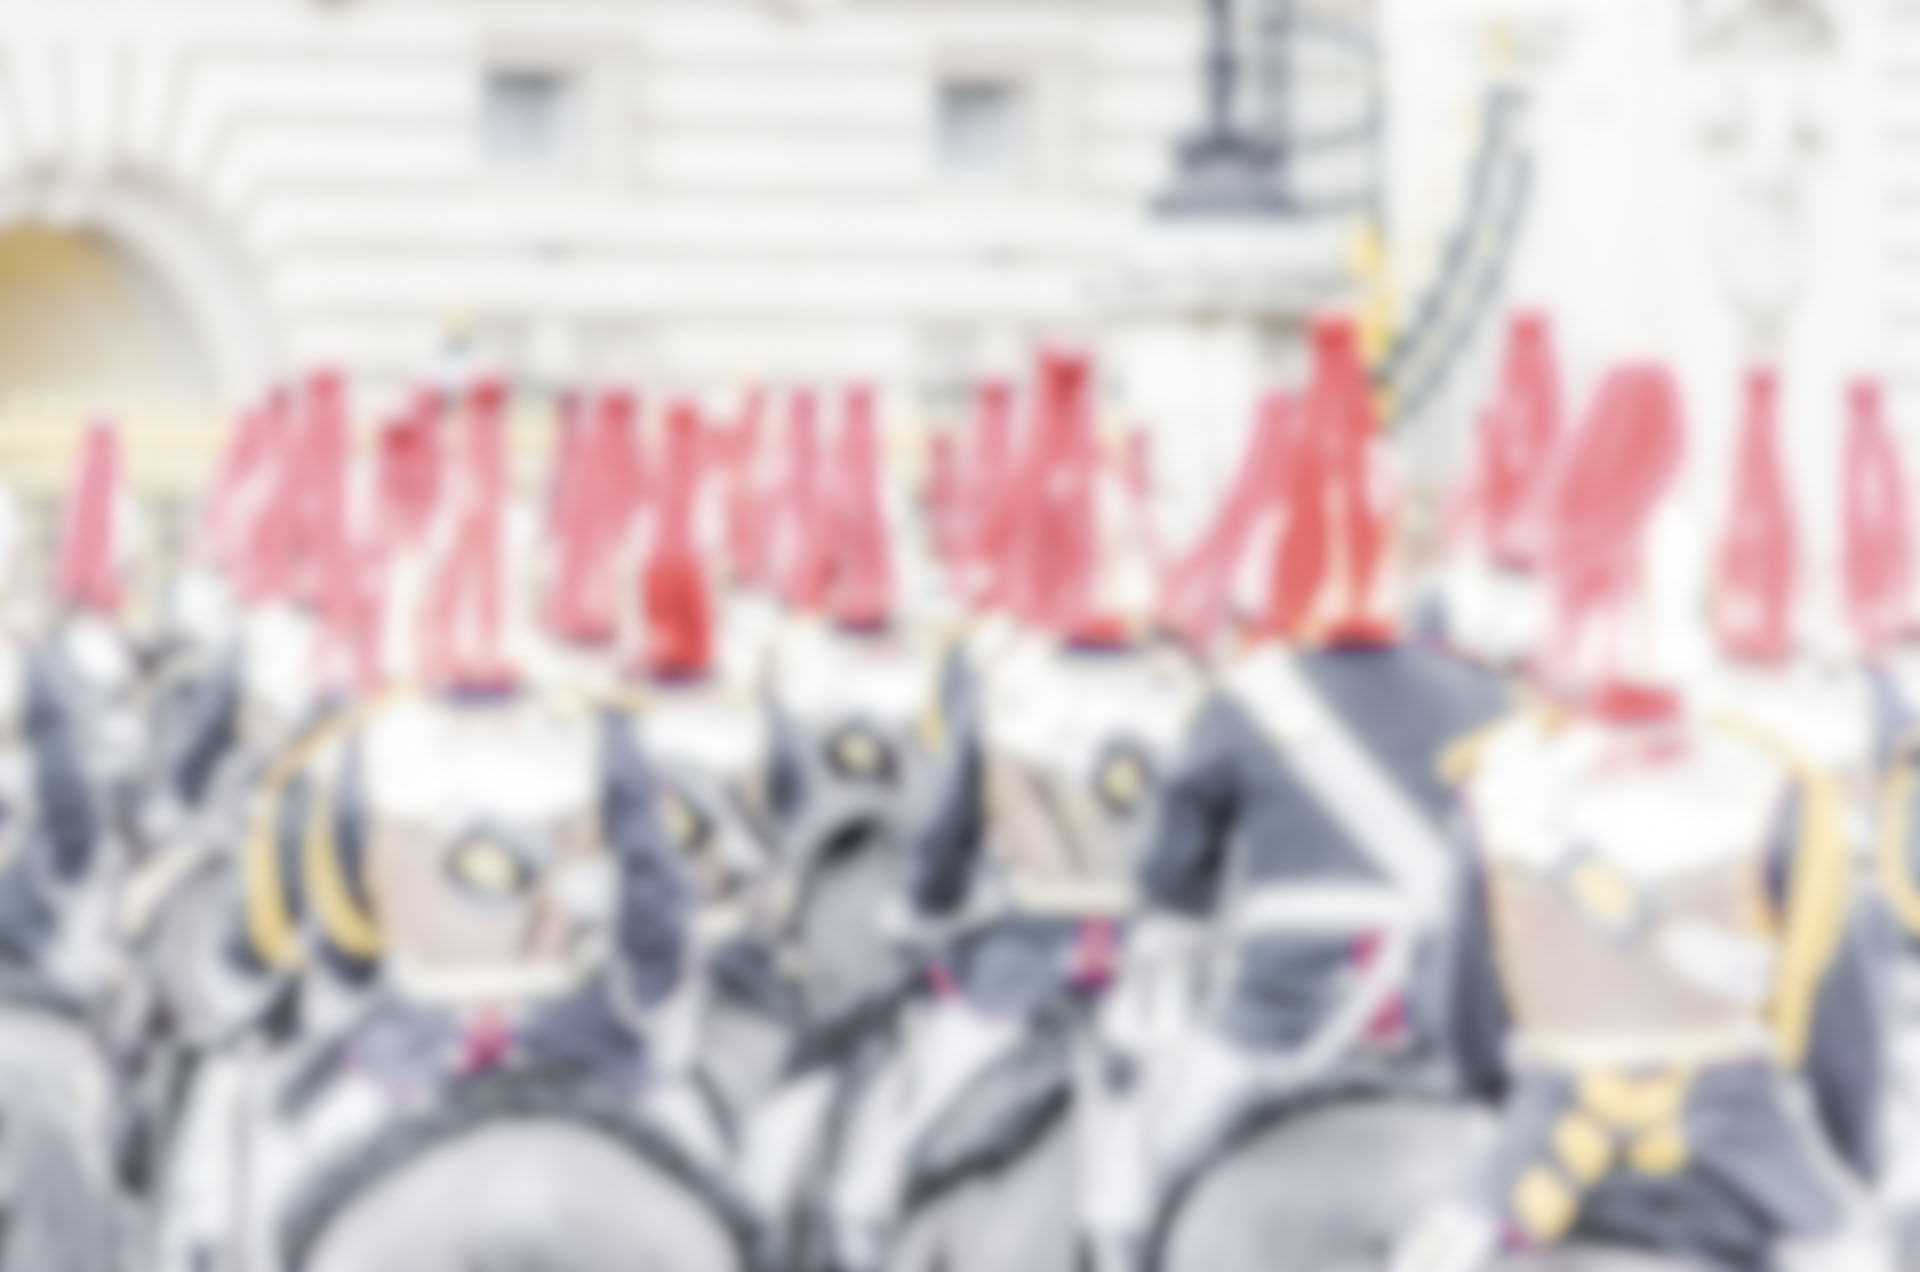 Defocused Background with british guards on parade in London. Intentionally blurred post production